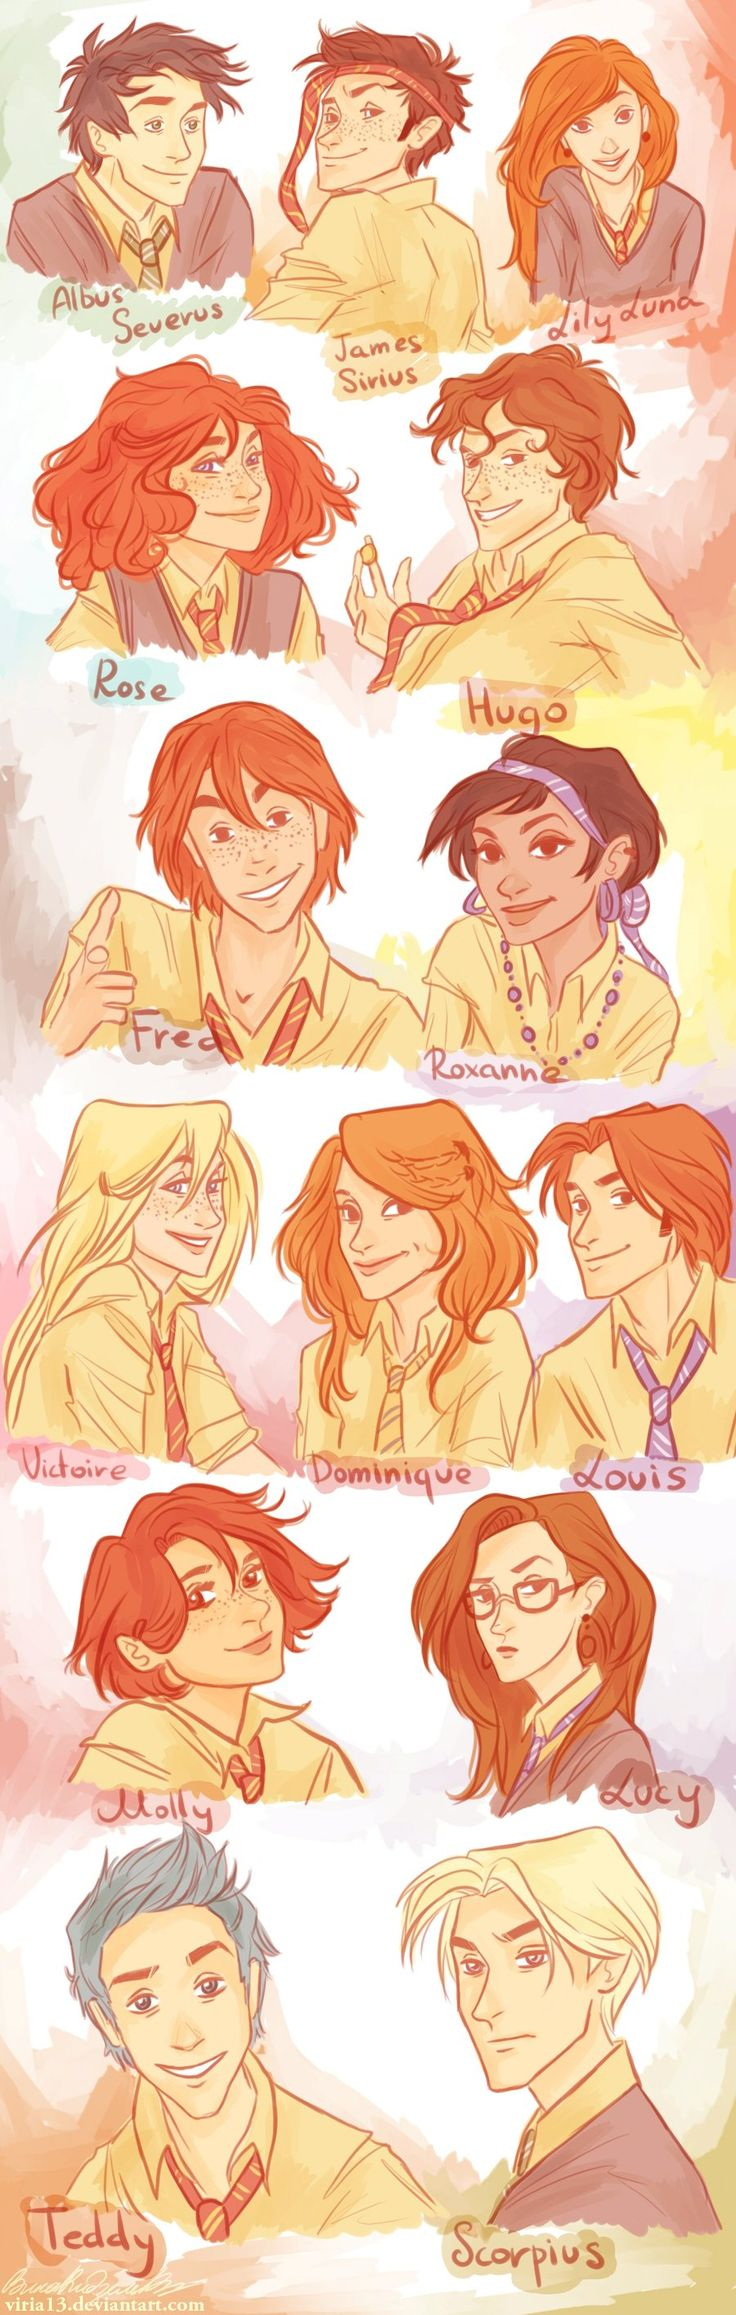 HP:next generation by viria13.deviantart.com on @deviantART Top to bottom: Harry's, Ron's, George's, (not sure), Remus's, Lupin's and then Malfoy's. :)